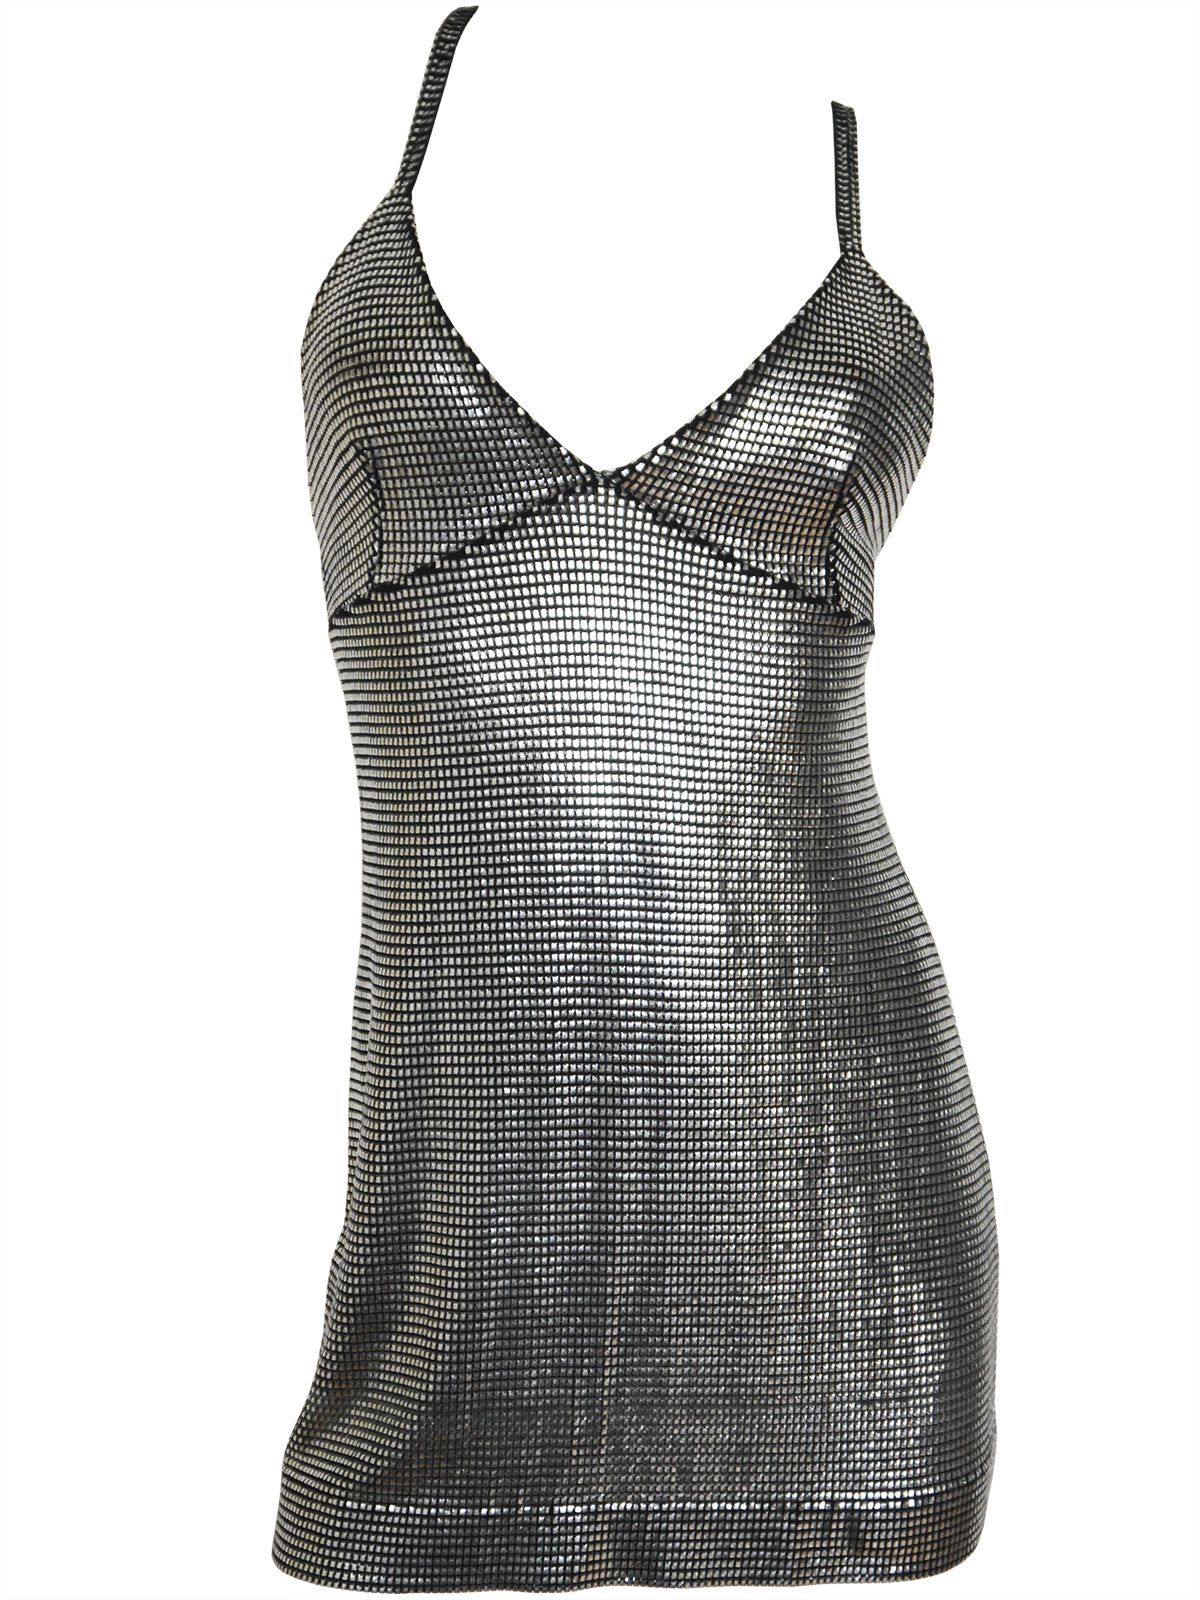 PACO RABANNE Liquid Silver Metallic Mini Dress Size S